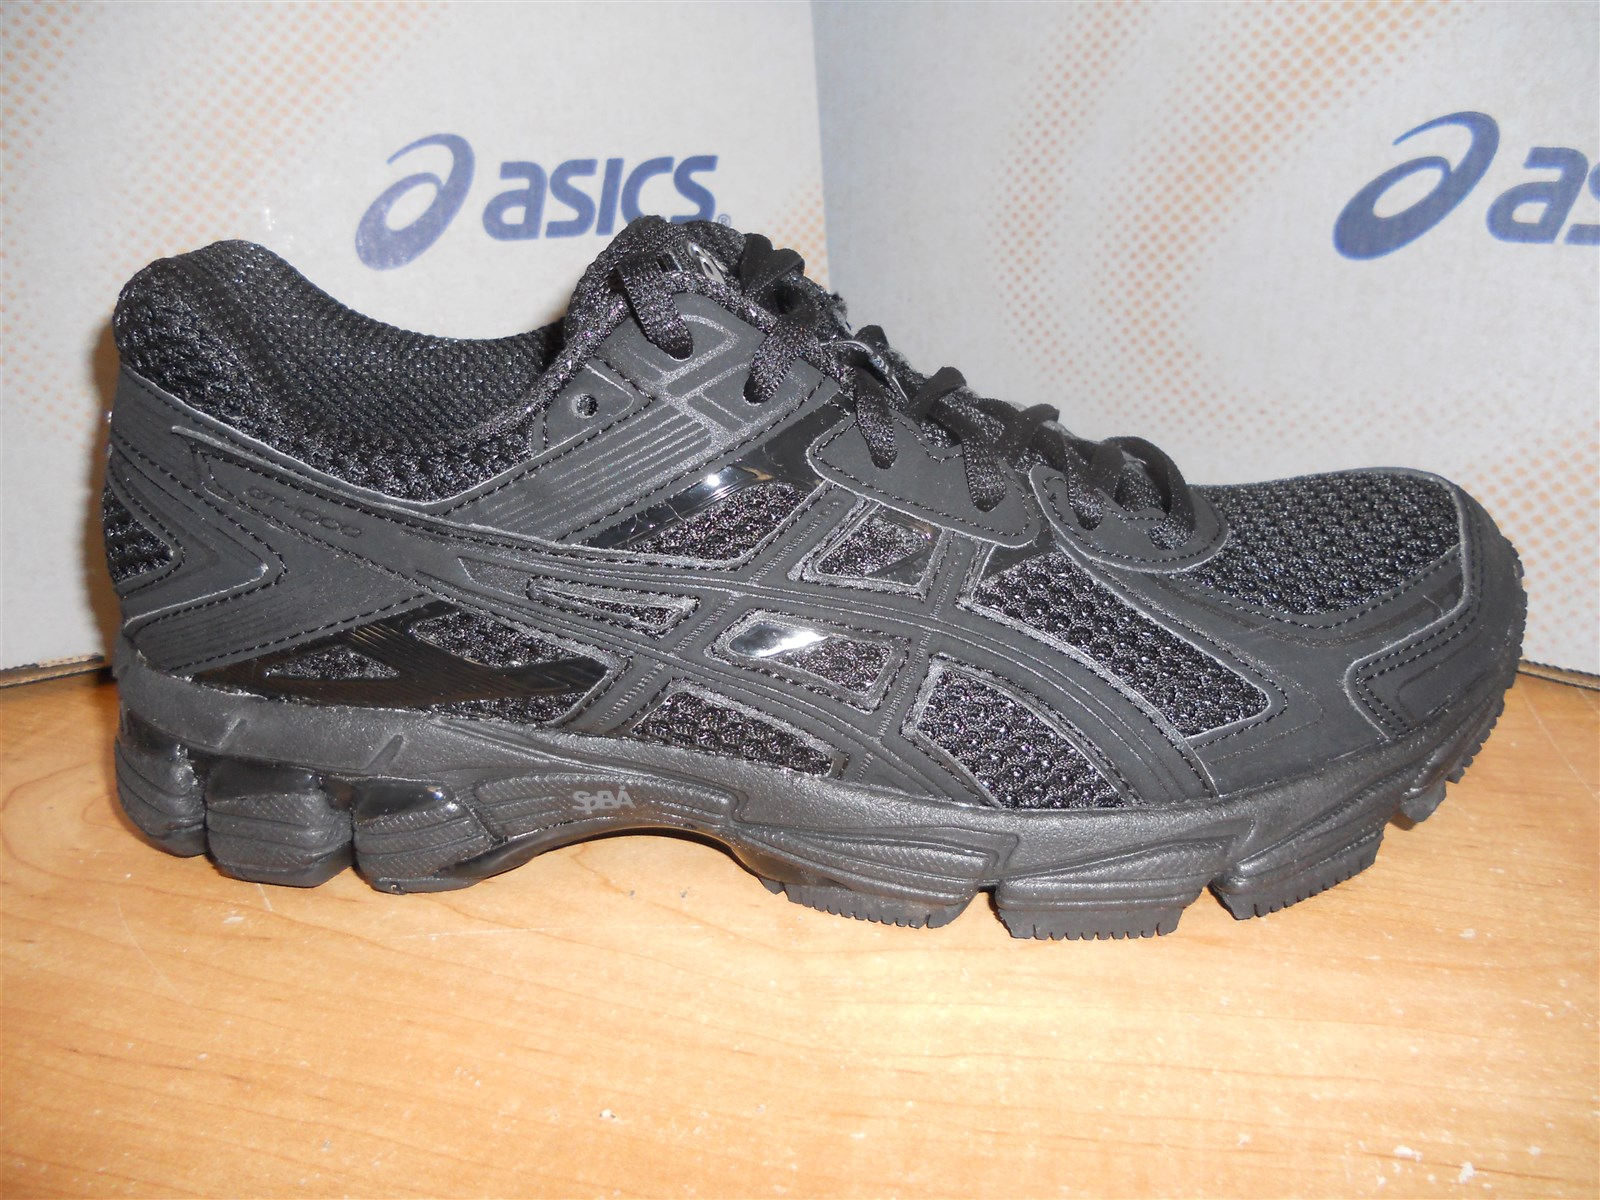 Details about NEW ASICS GT 1000 2 RUNNING SHOES WOMENS SIZE 11 WIDE